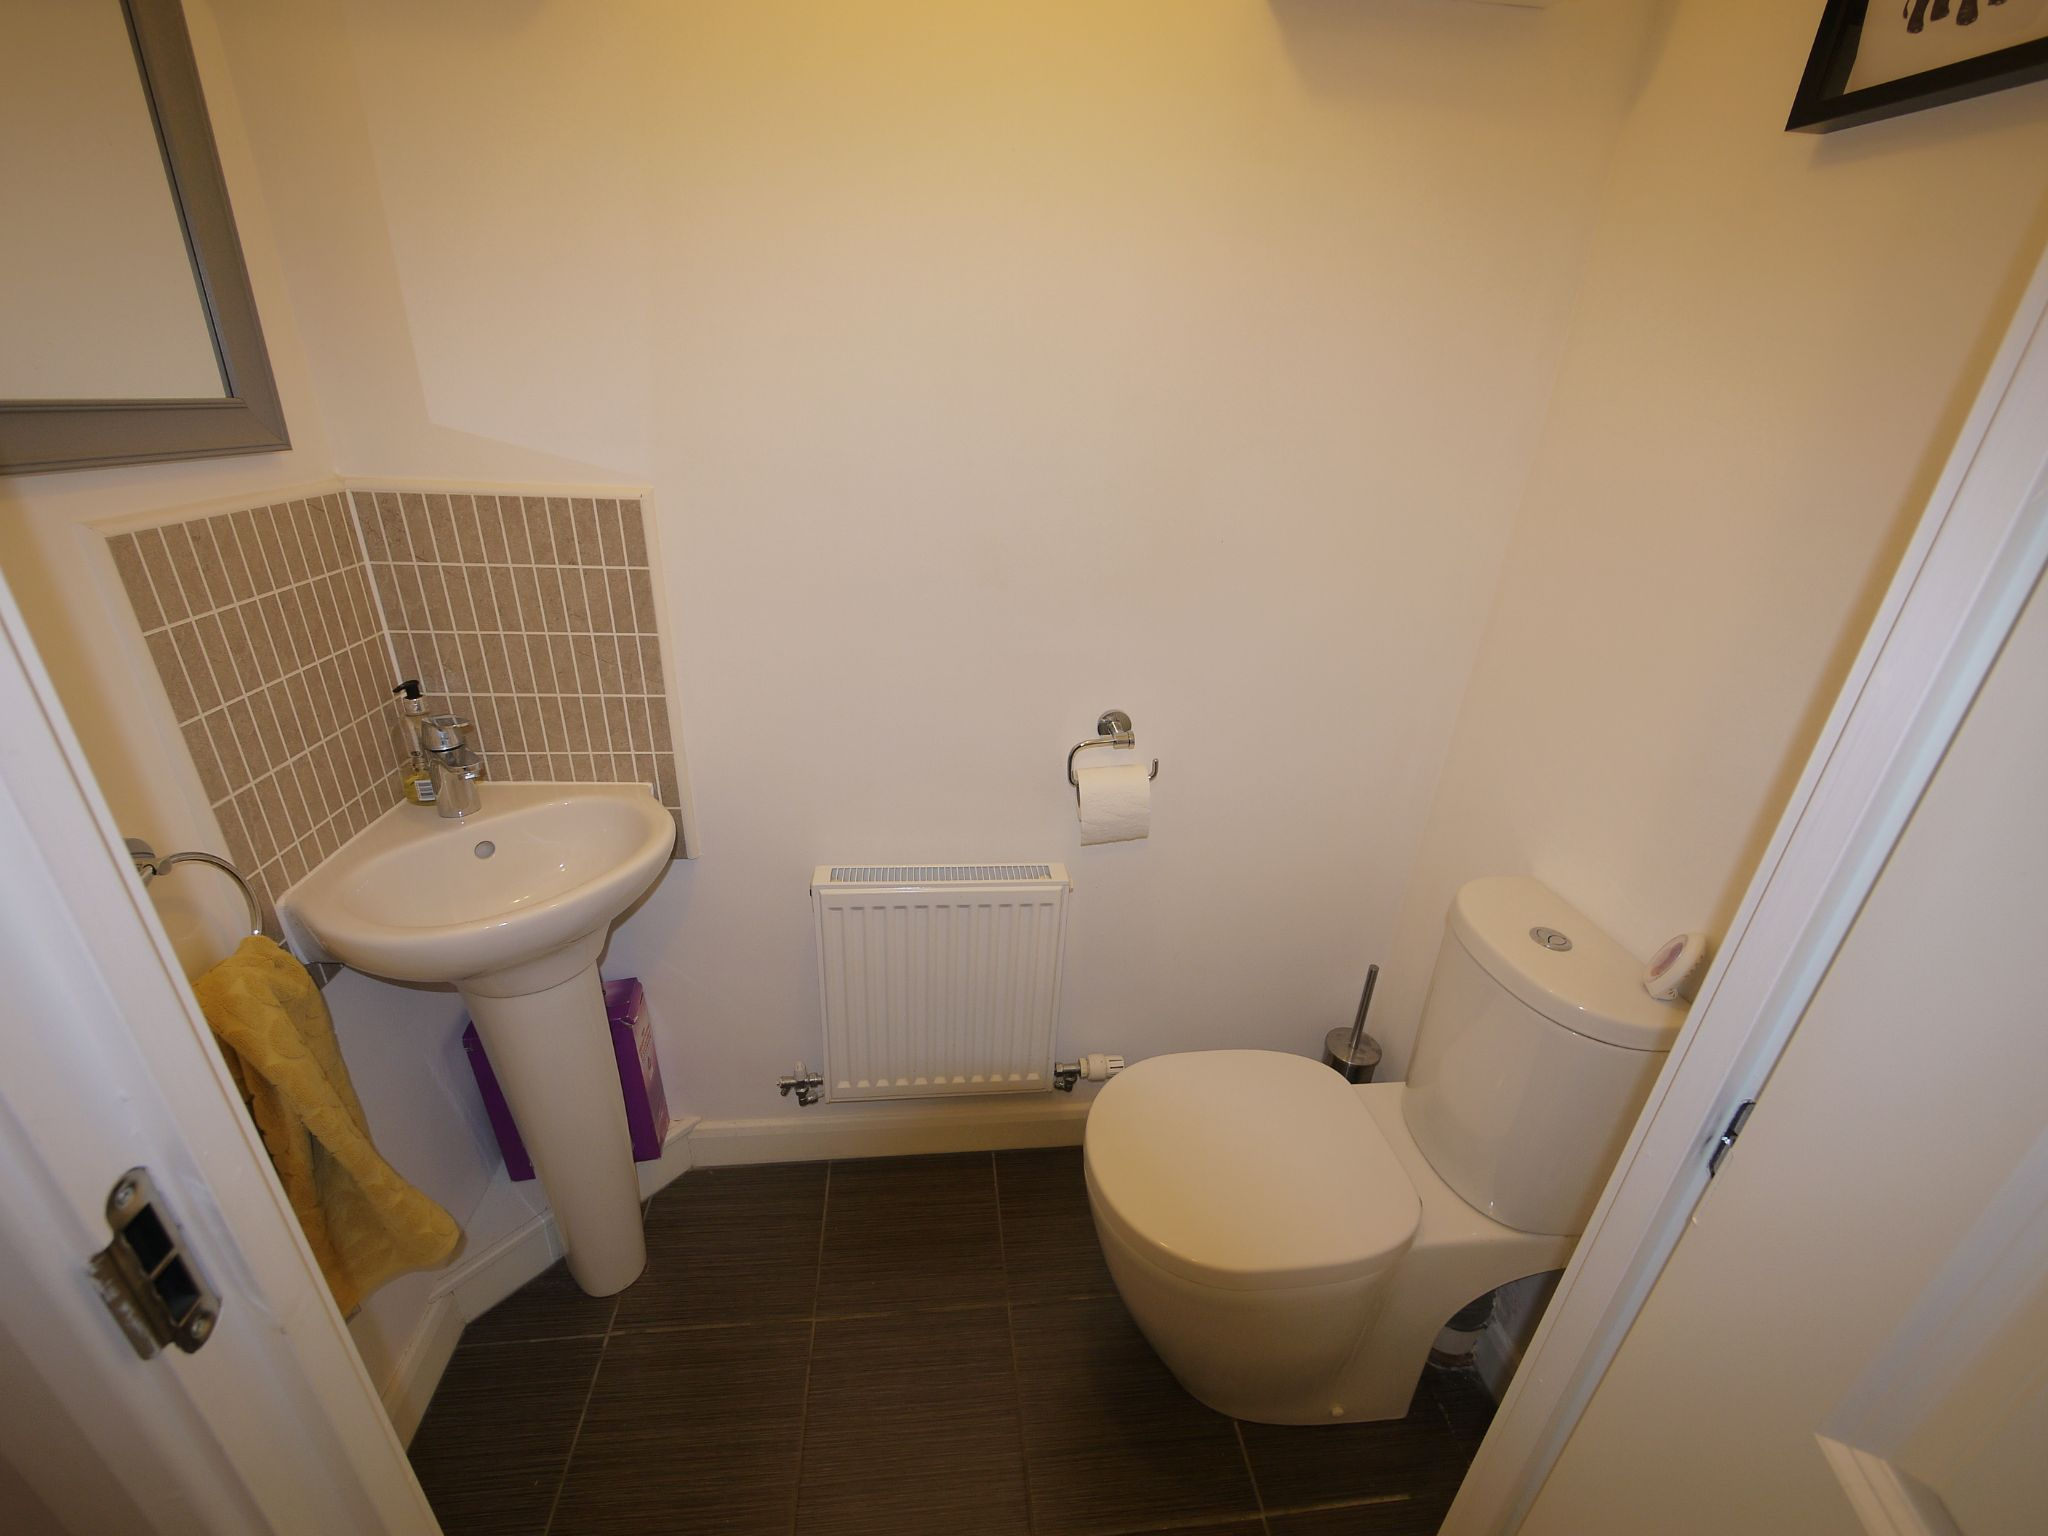 3 bedroom end terraced house SSTC in Cleckheaton - Cloakroom.